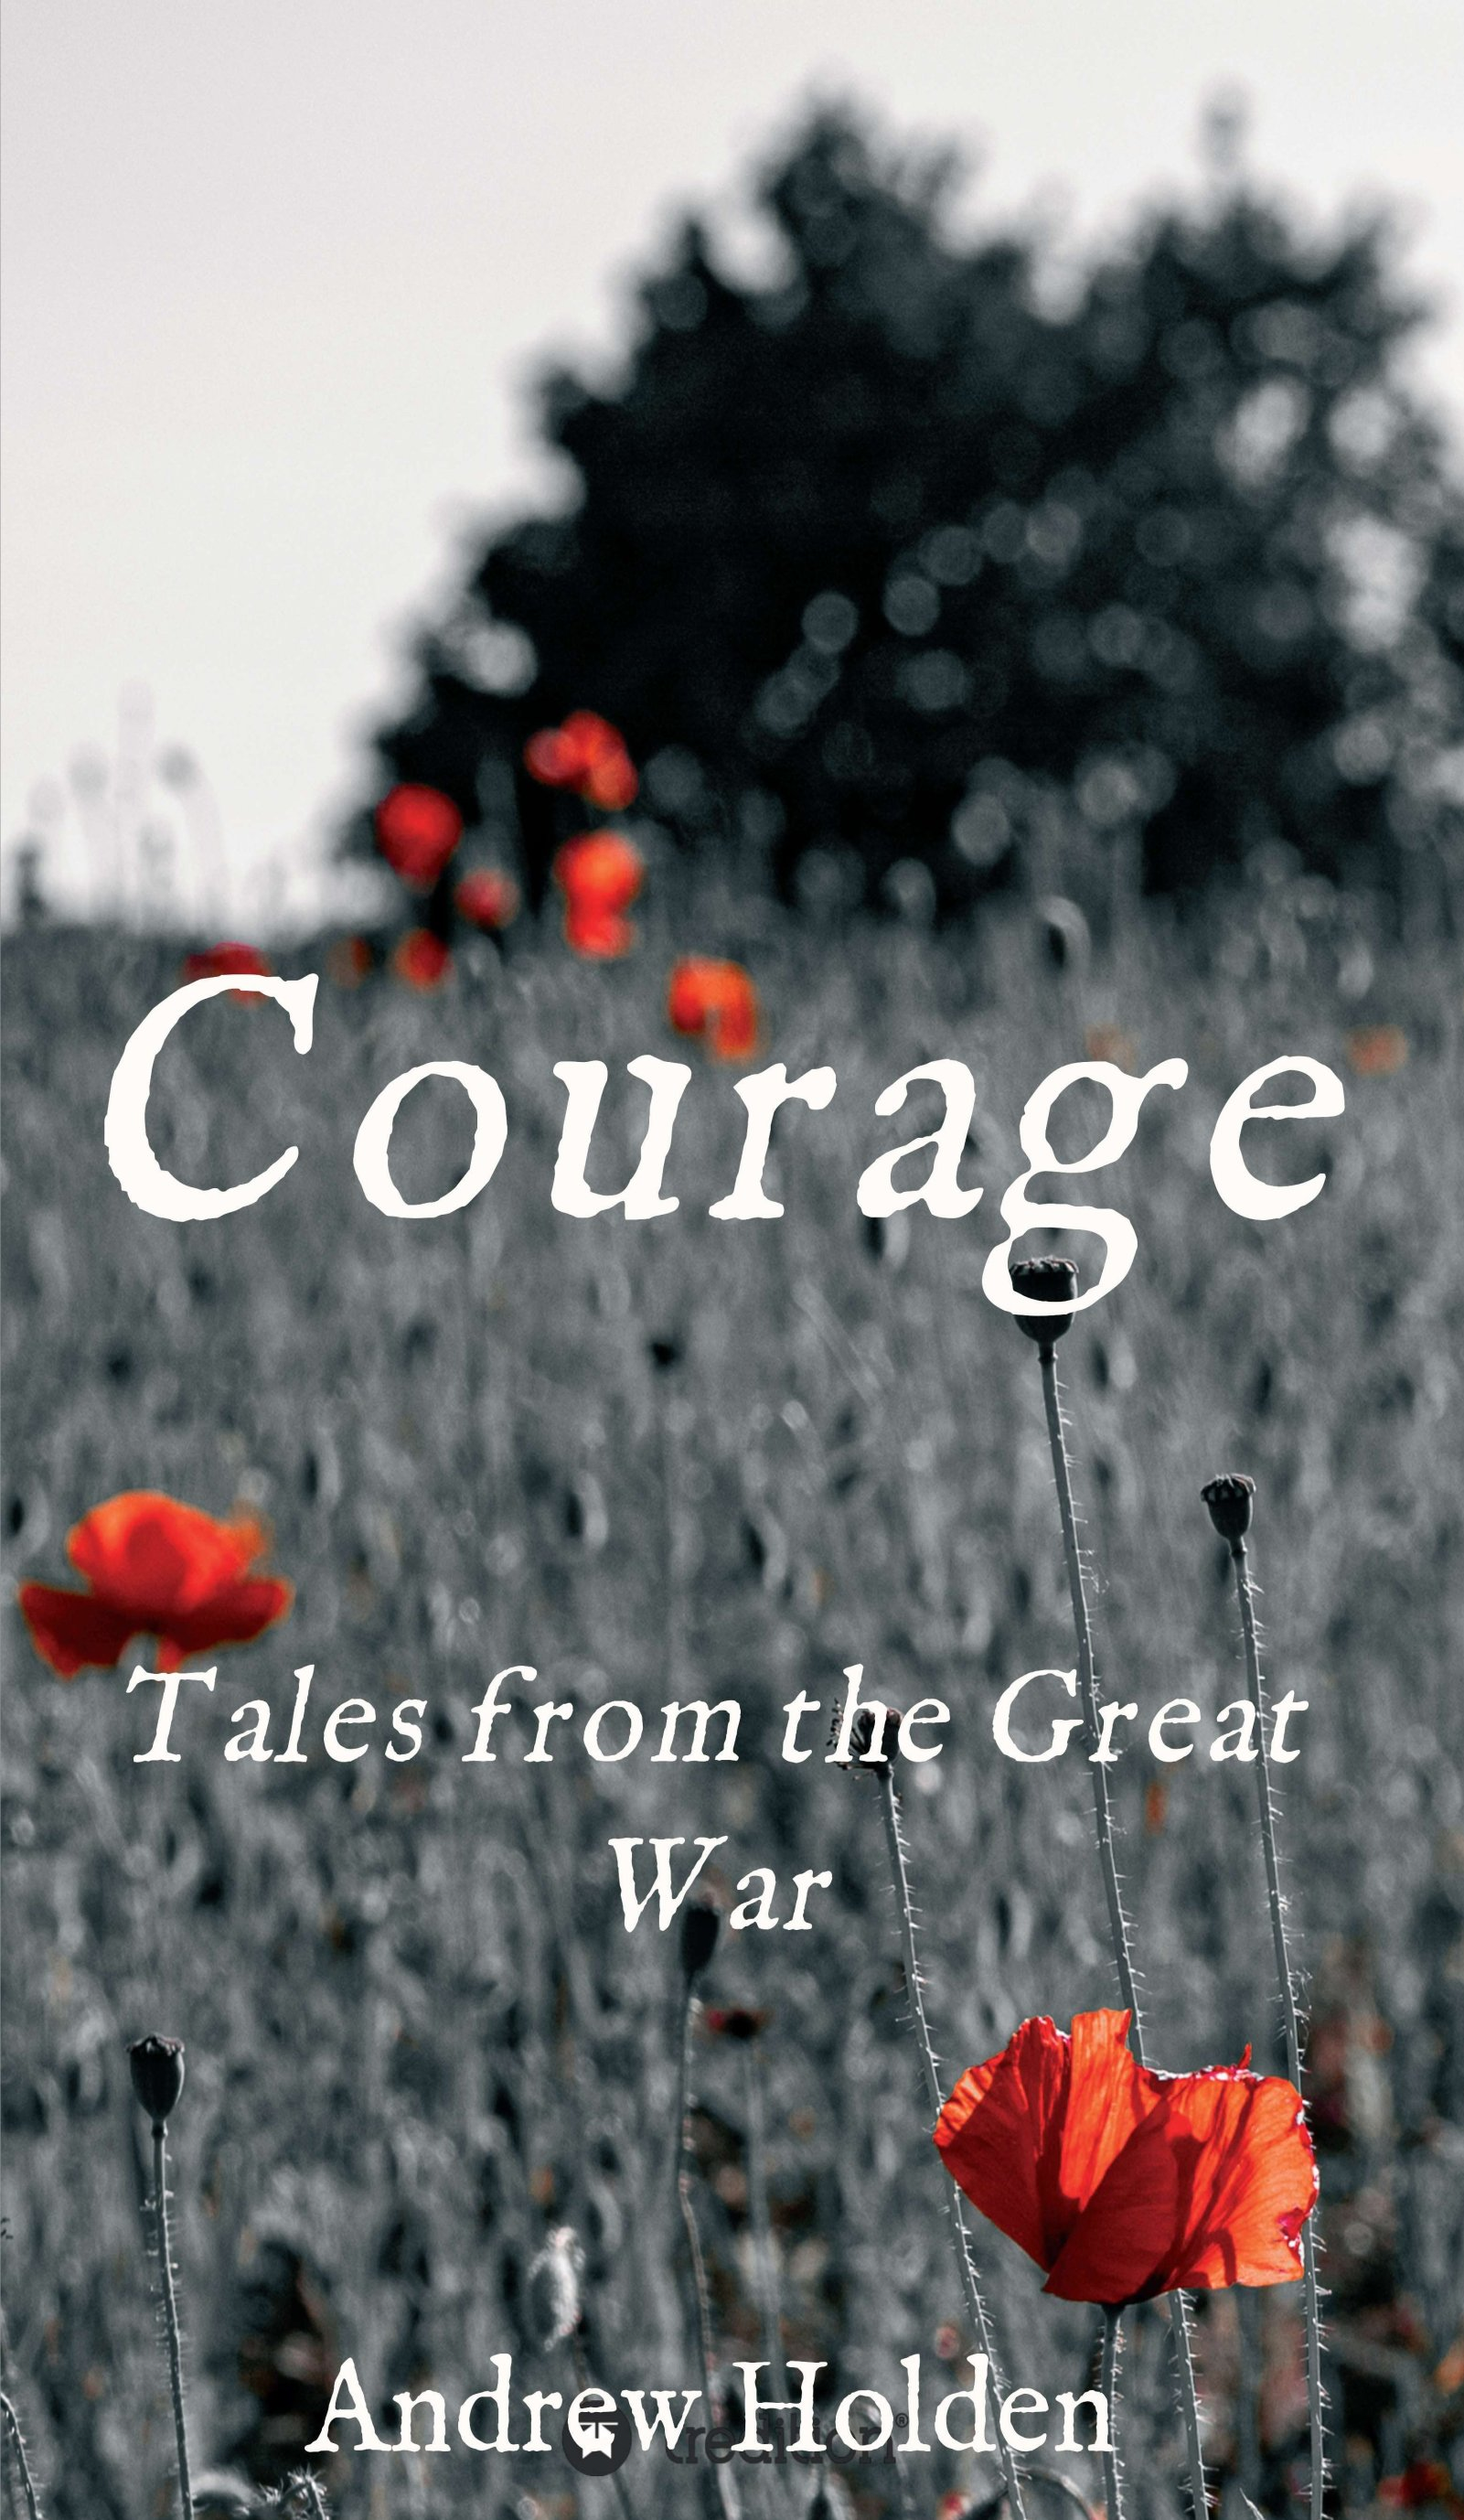 Courage - A series of short stories from the Great War